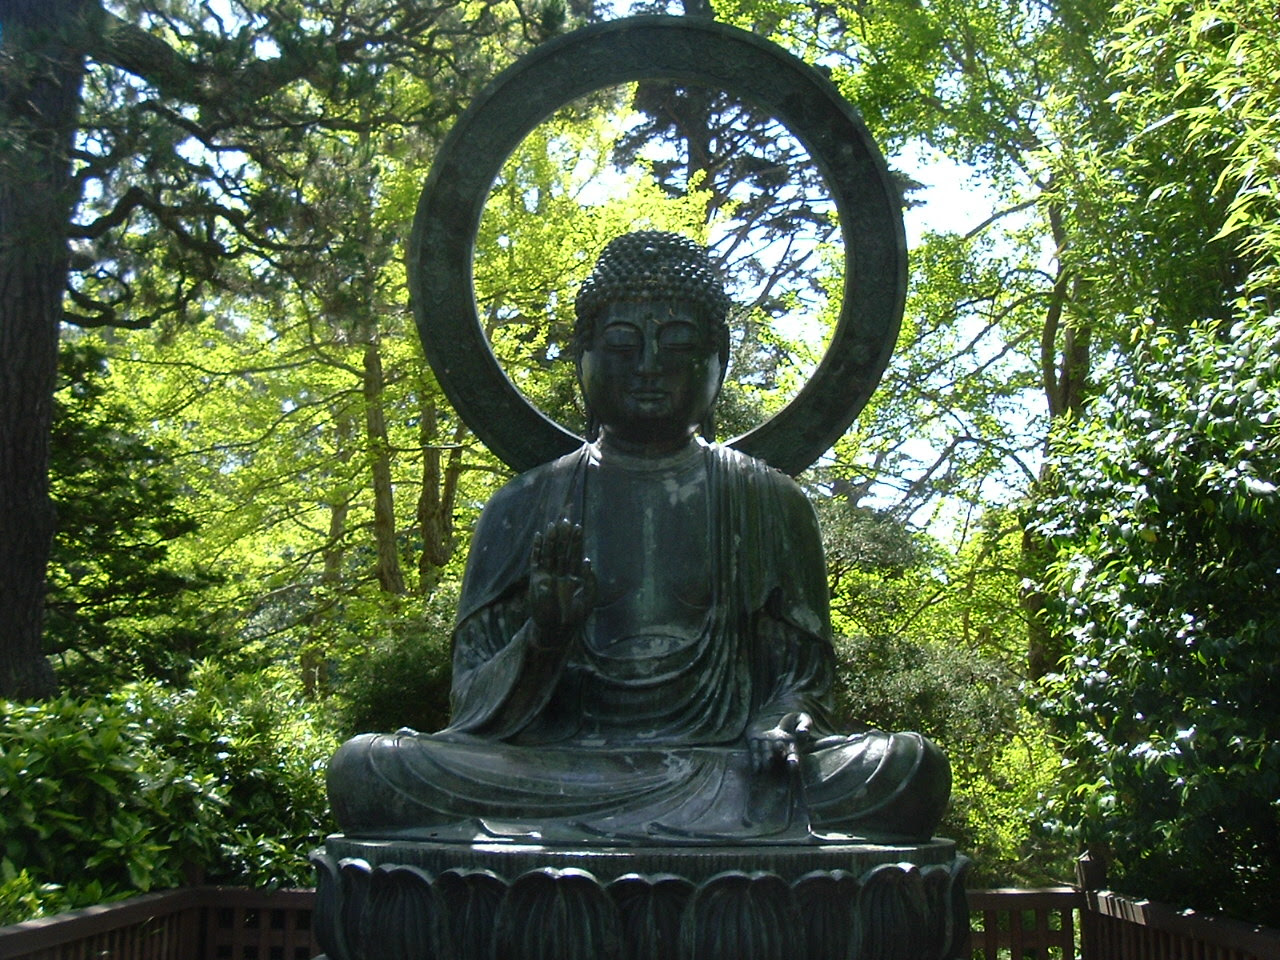 The Buddha S Face Www Thebuddhasface Co Uk The Use Of Buddhas In Gardens And Garden Design